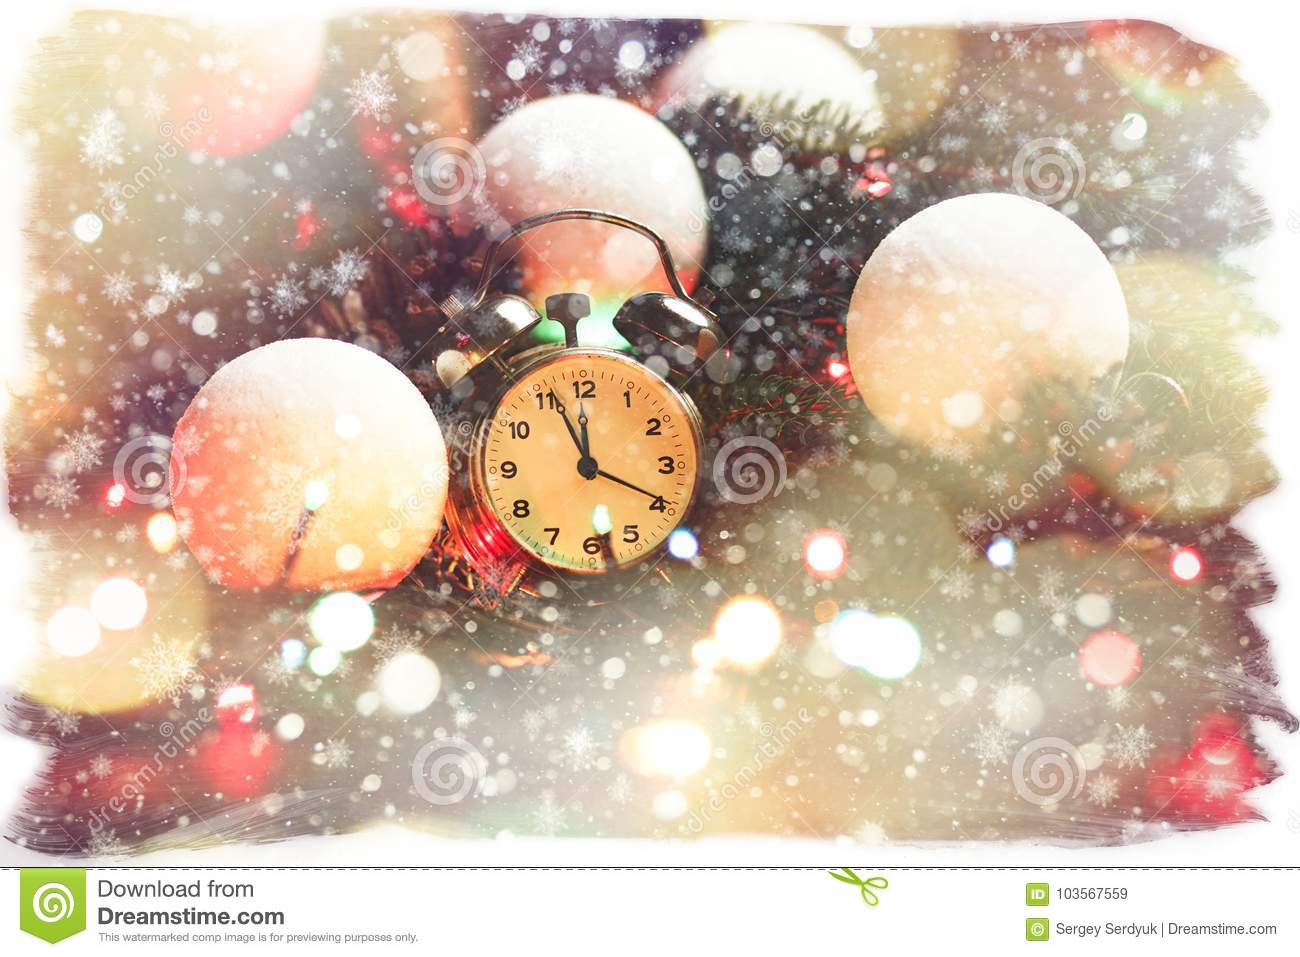 download fairy tail christmas composition postcard card for the new year stock image image